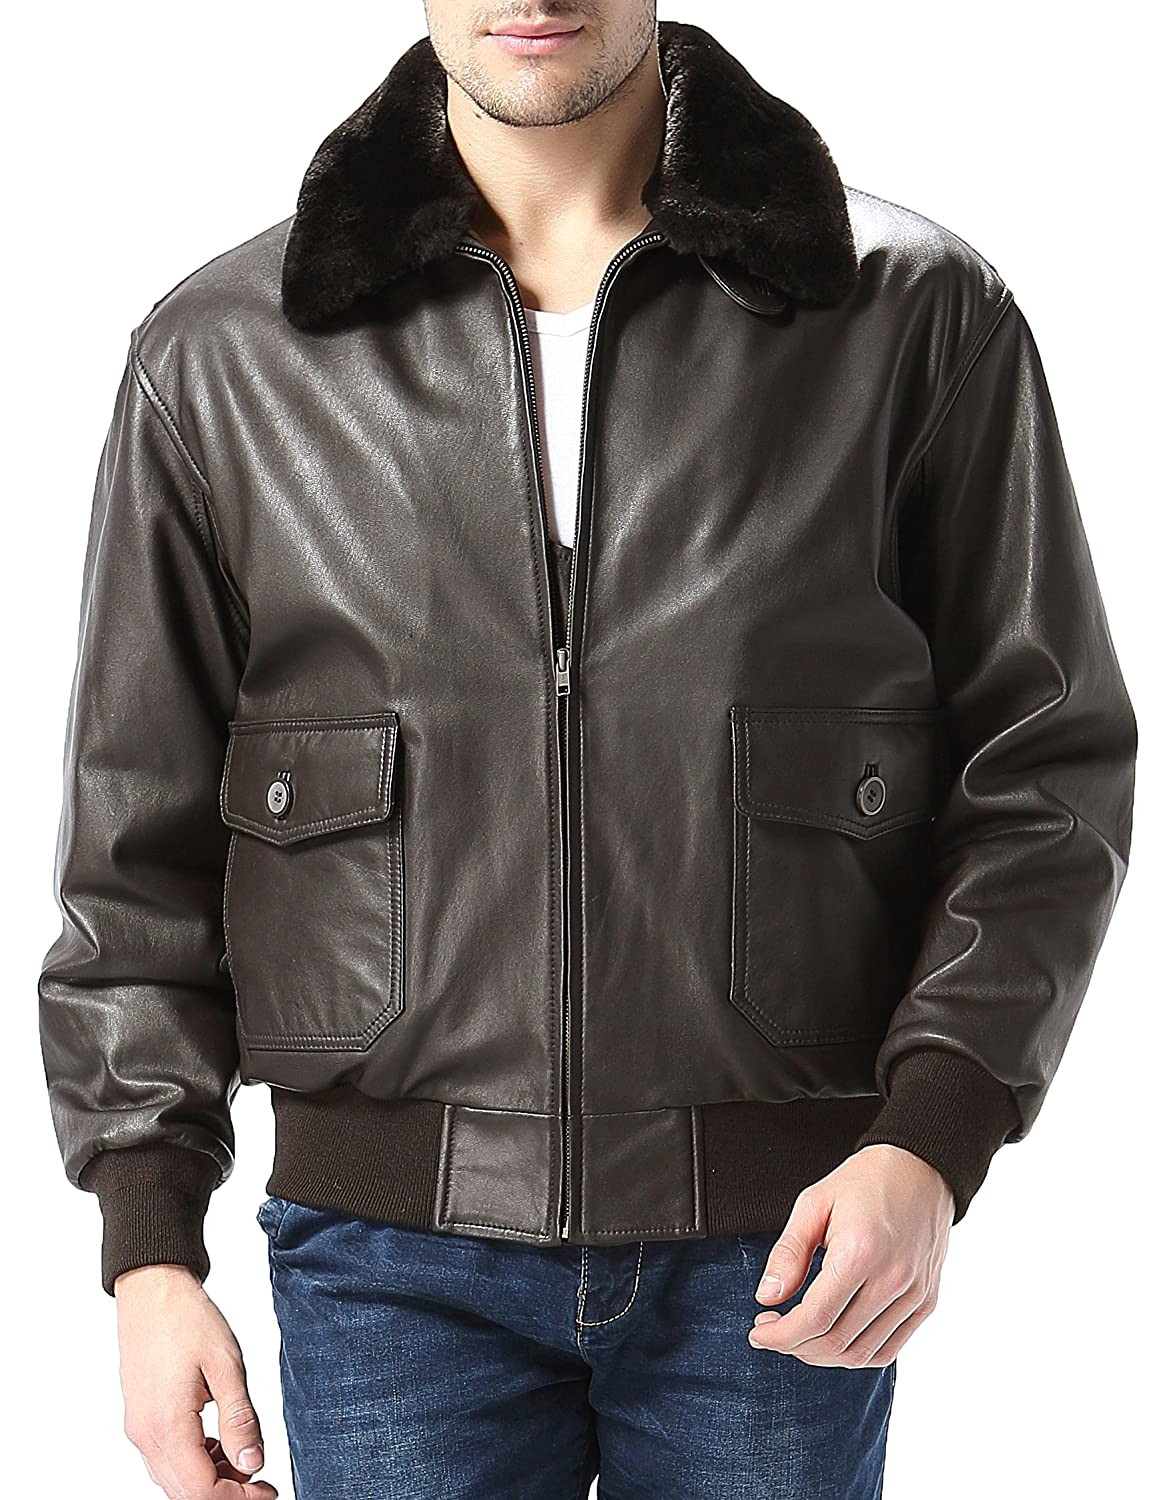 Airborne Leathers MEN'S G1 Goatskin Bomber Jacket With Fur